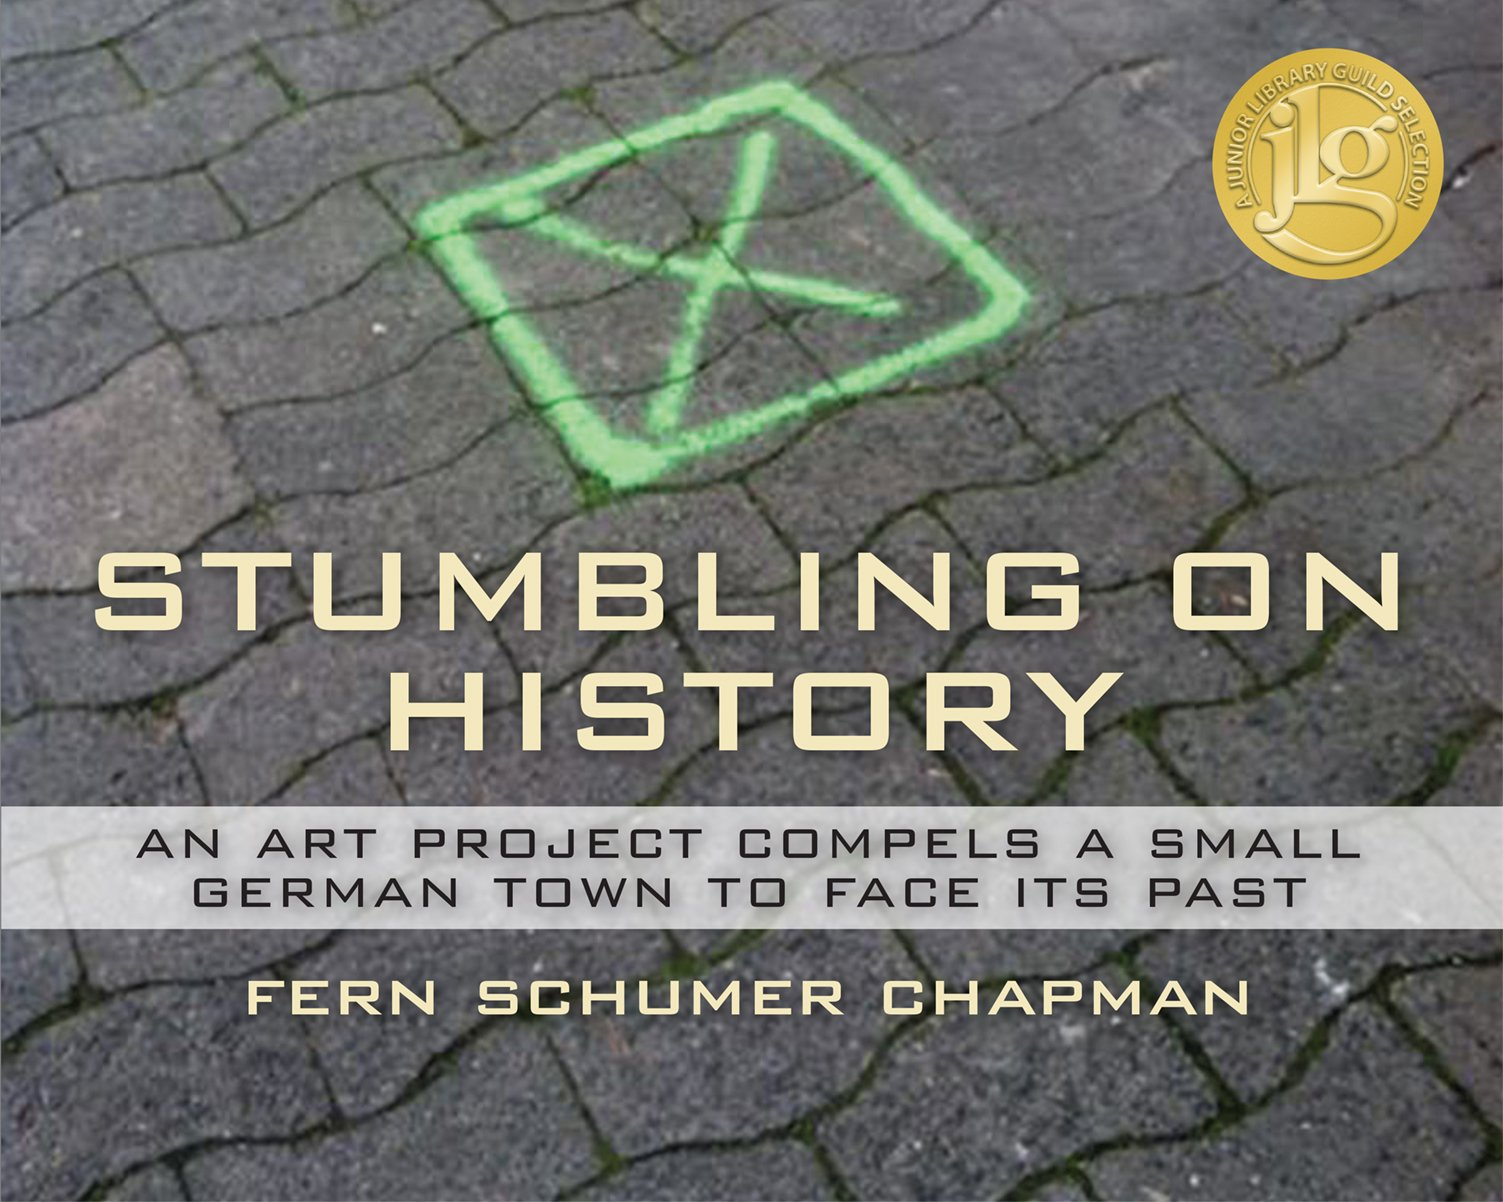 Stumbling On History: An Art Project Compels A Small German Town To Face Its Past